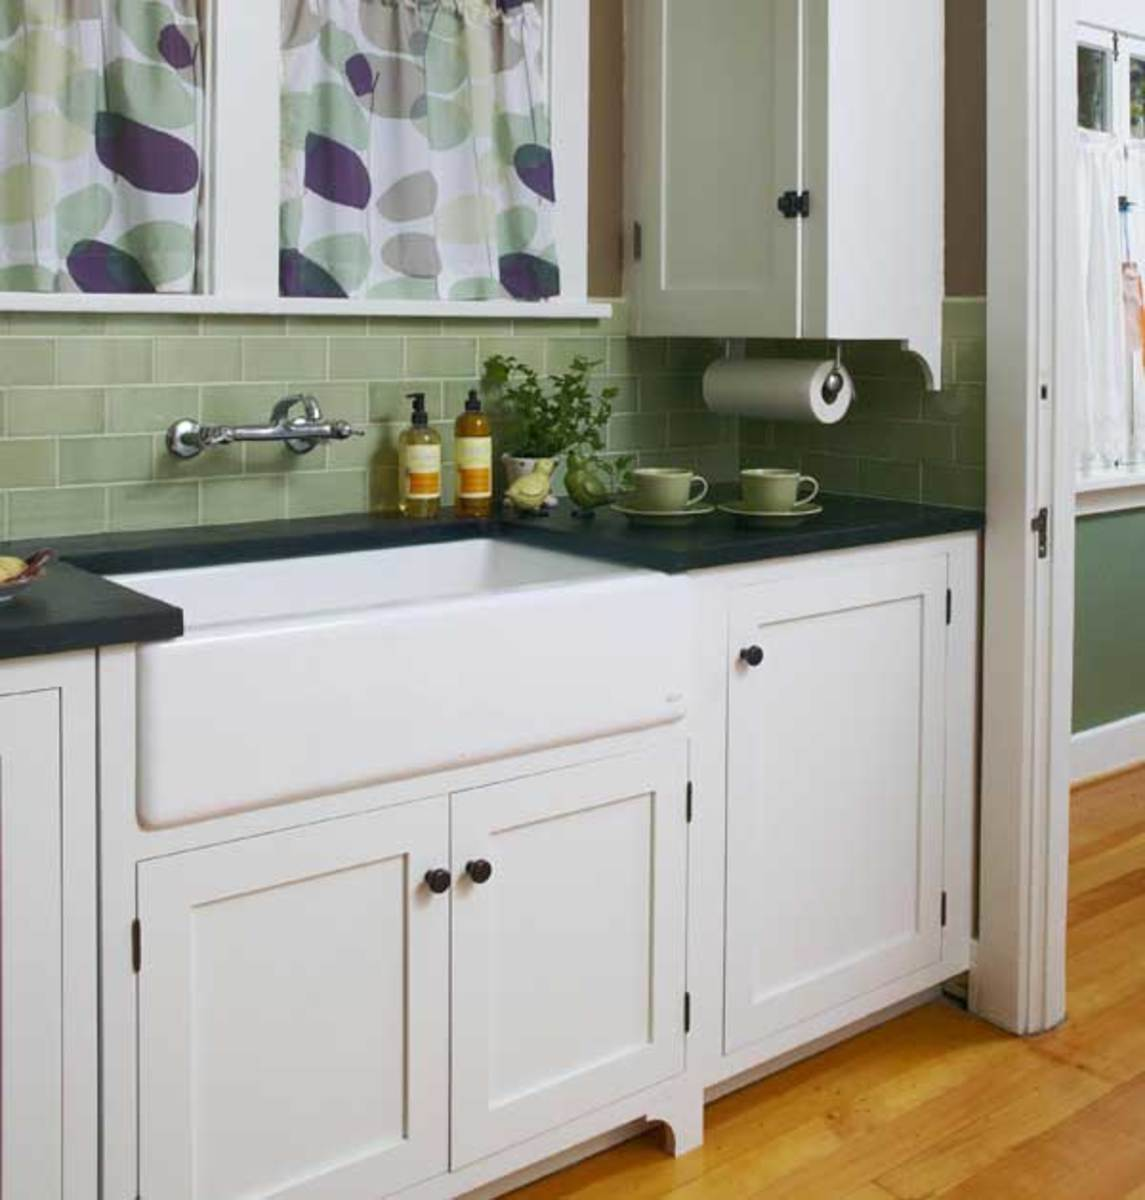 The big, apron-front sink is an attractive stand-in for old-fashioned ...